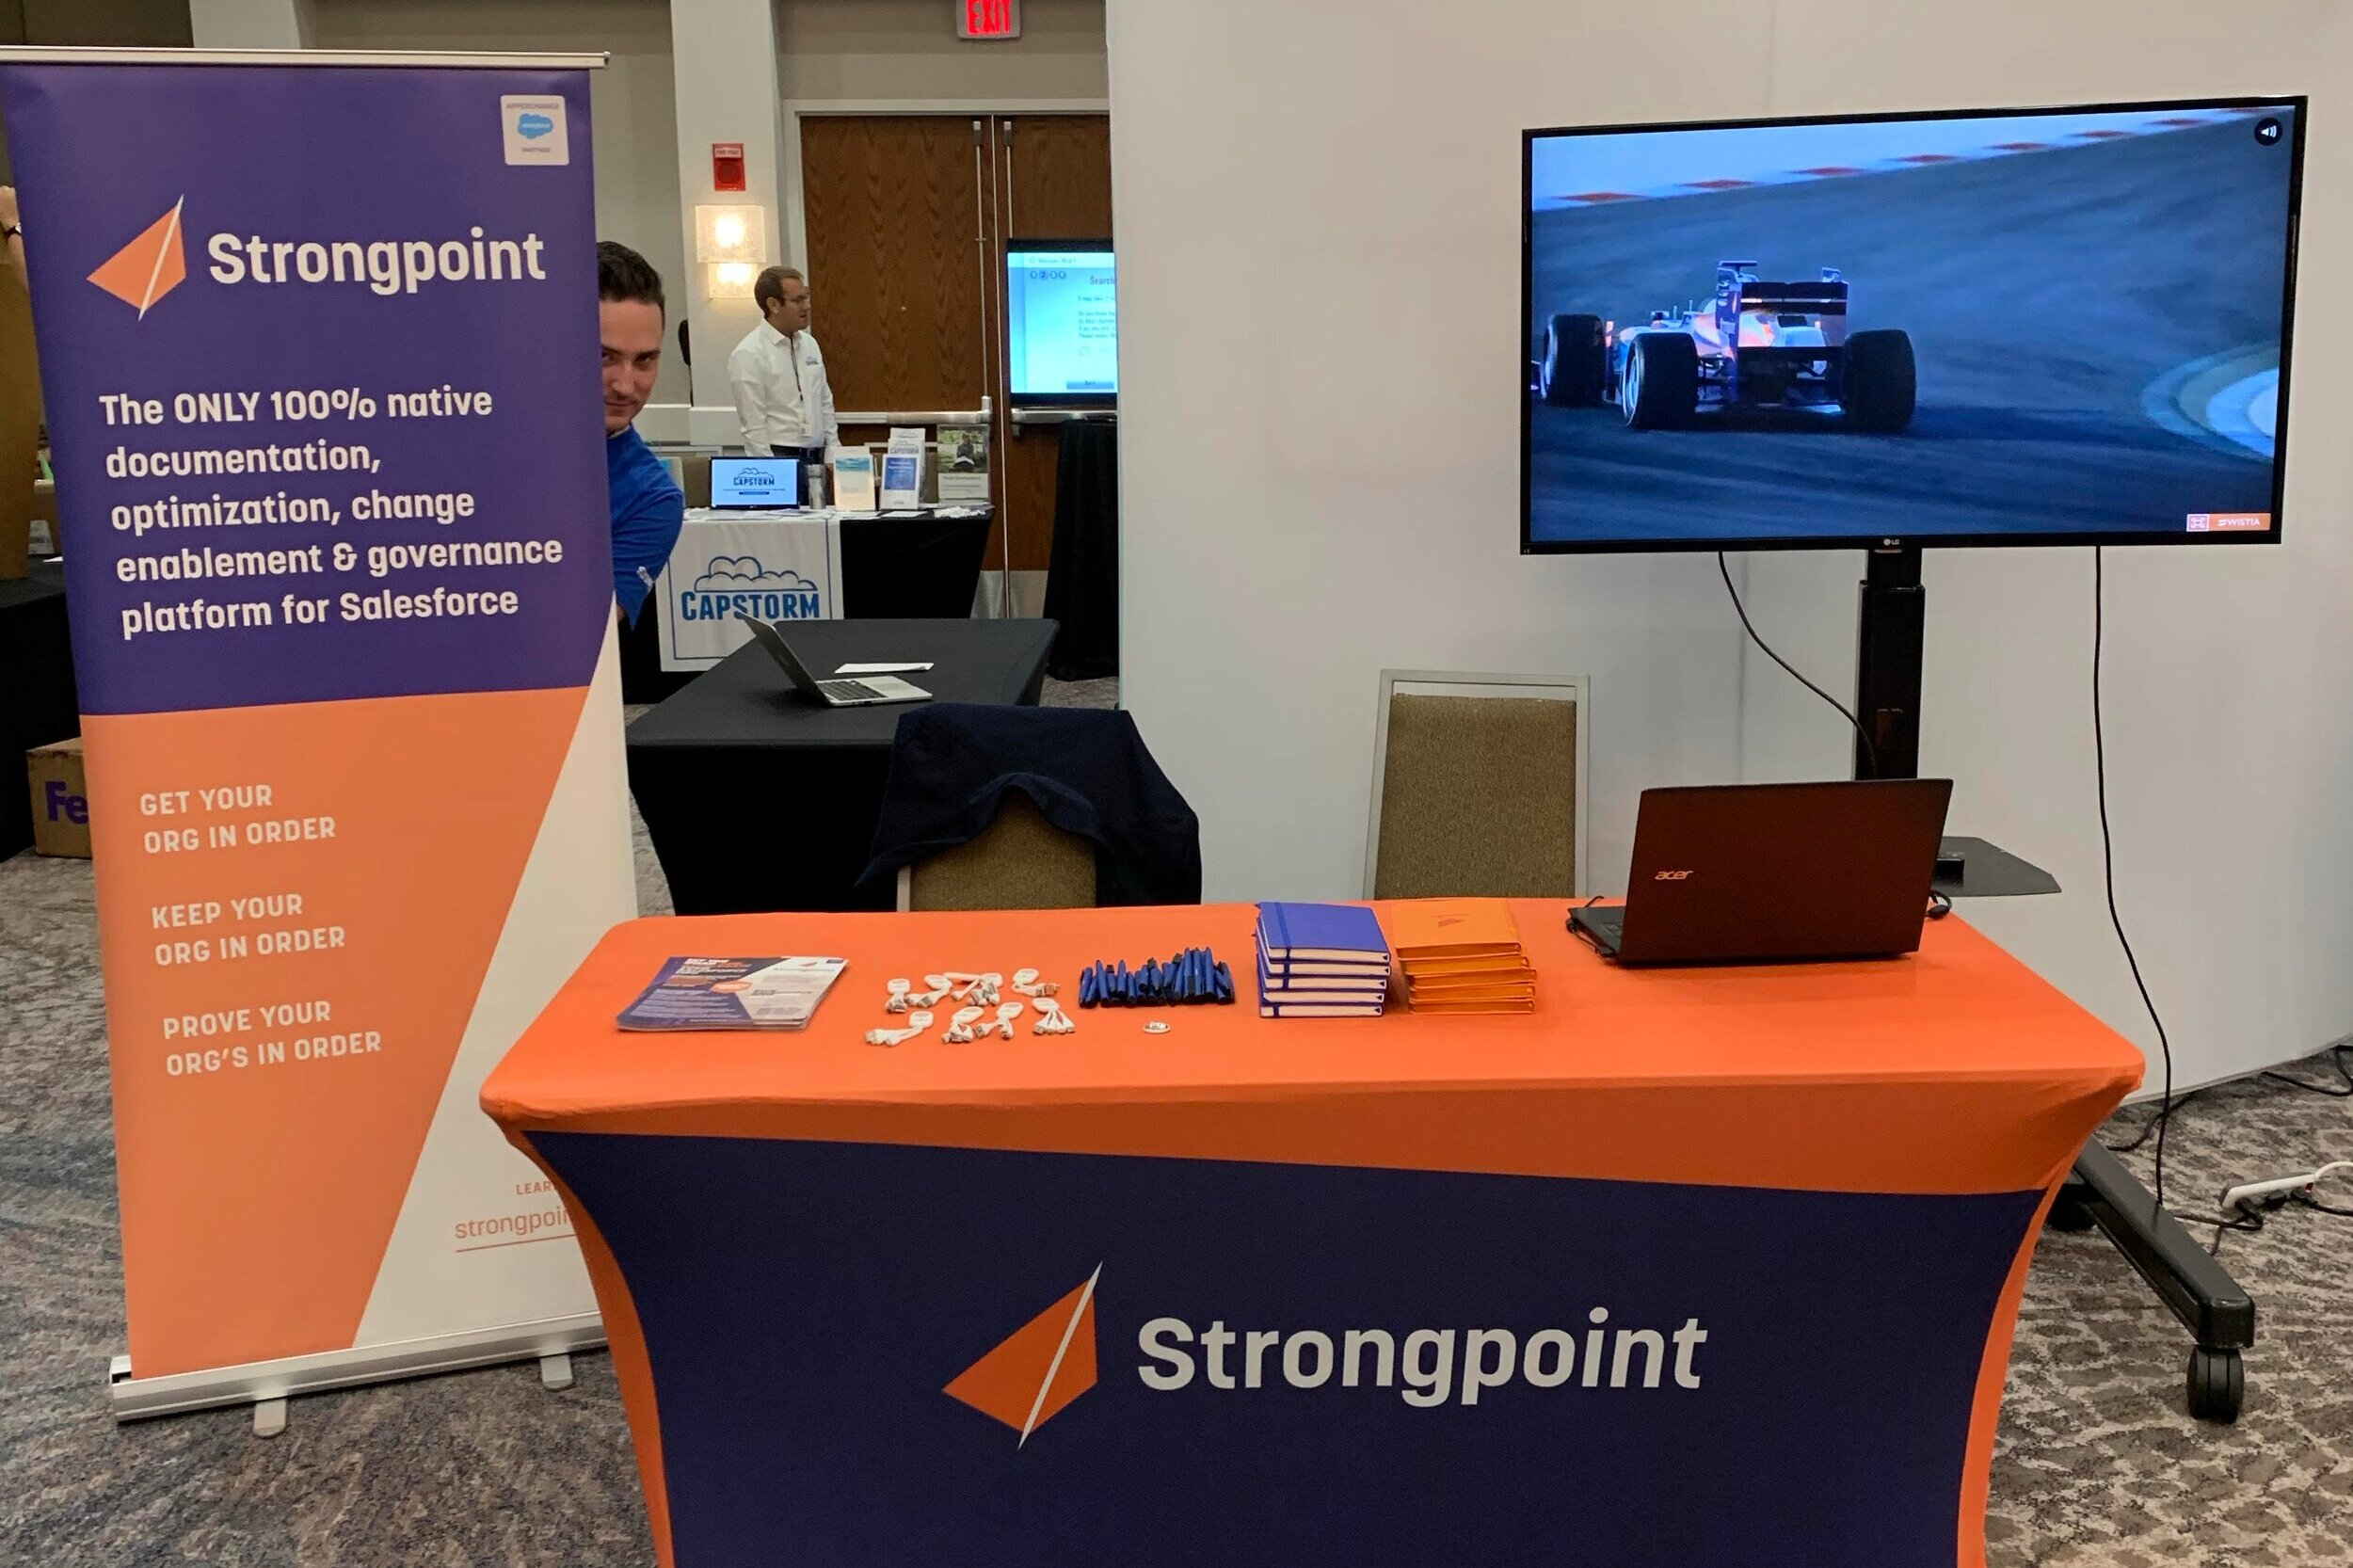 The Strongpoint booth